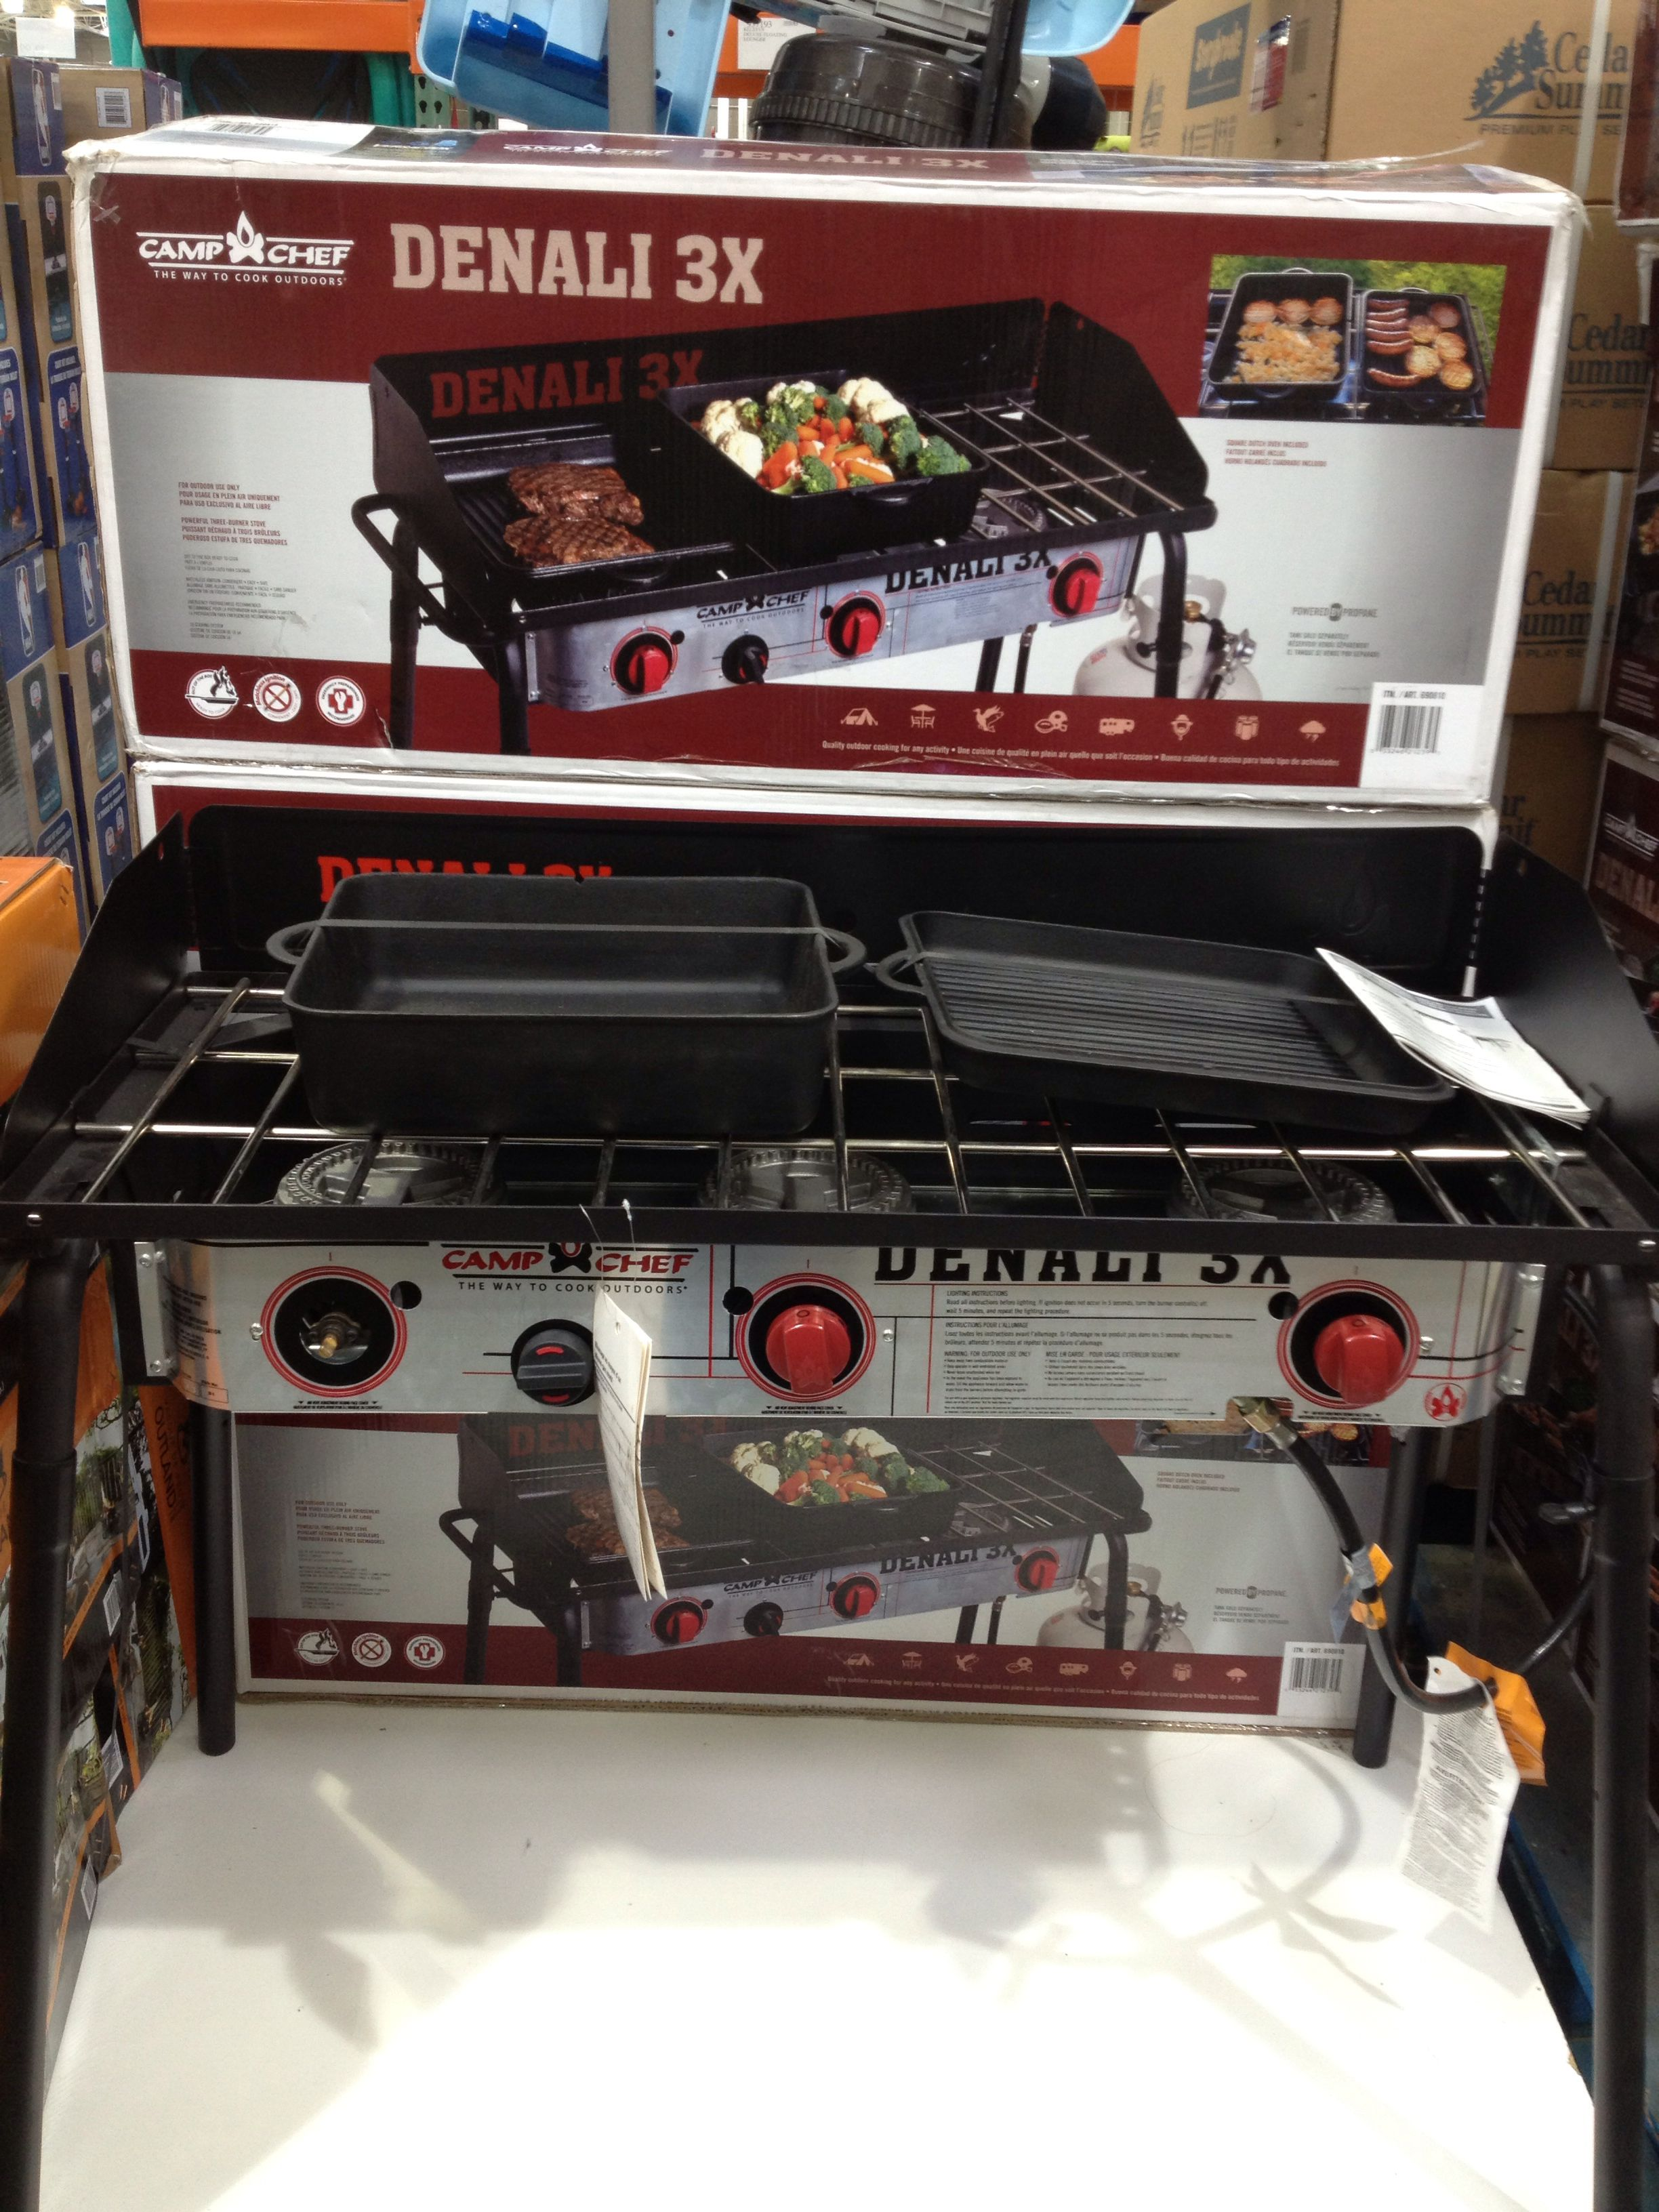 Picked Up My New 3 Burner Camping Stove From Costco   It Comes With